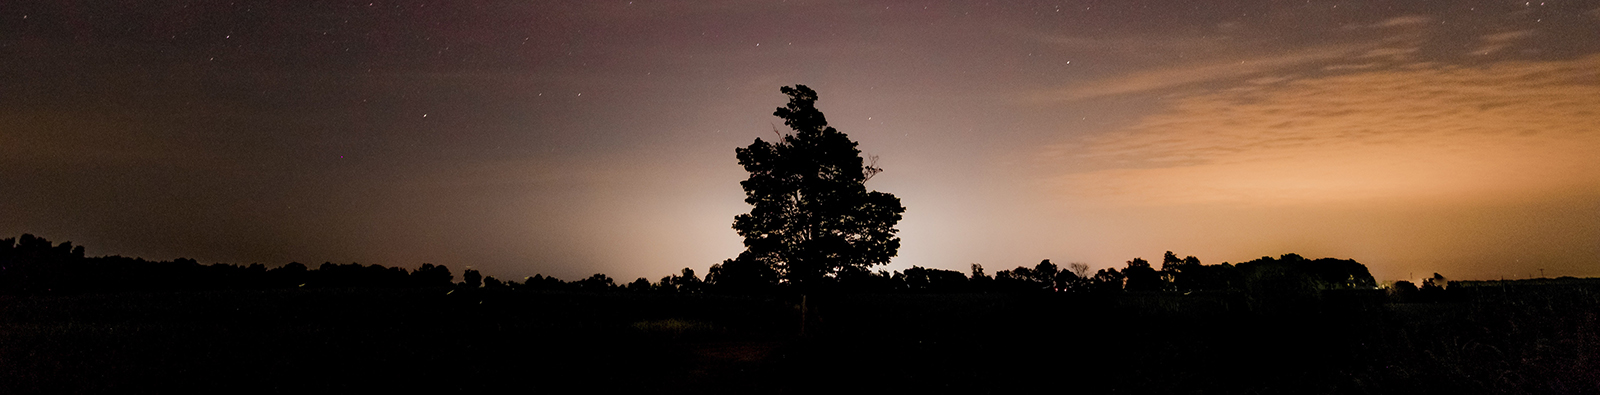 The silhouette of a tree at dusk